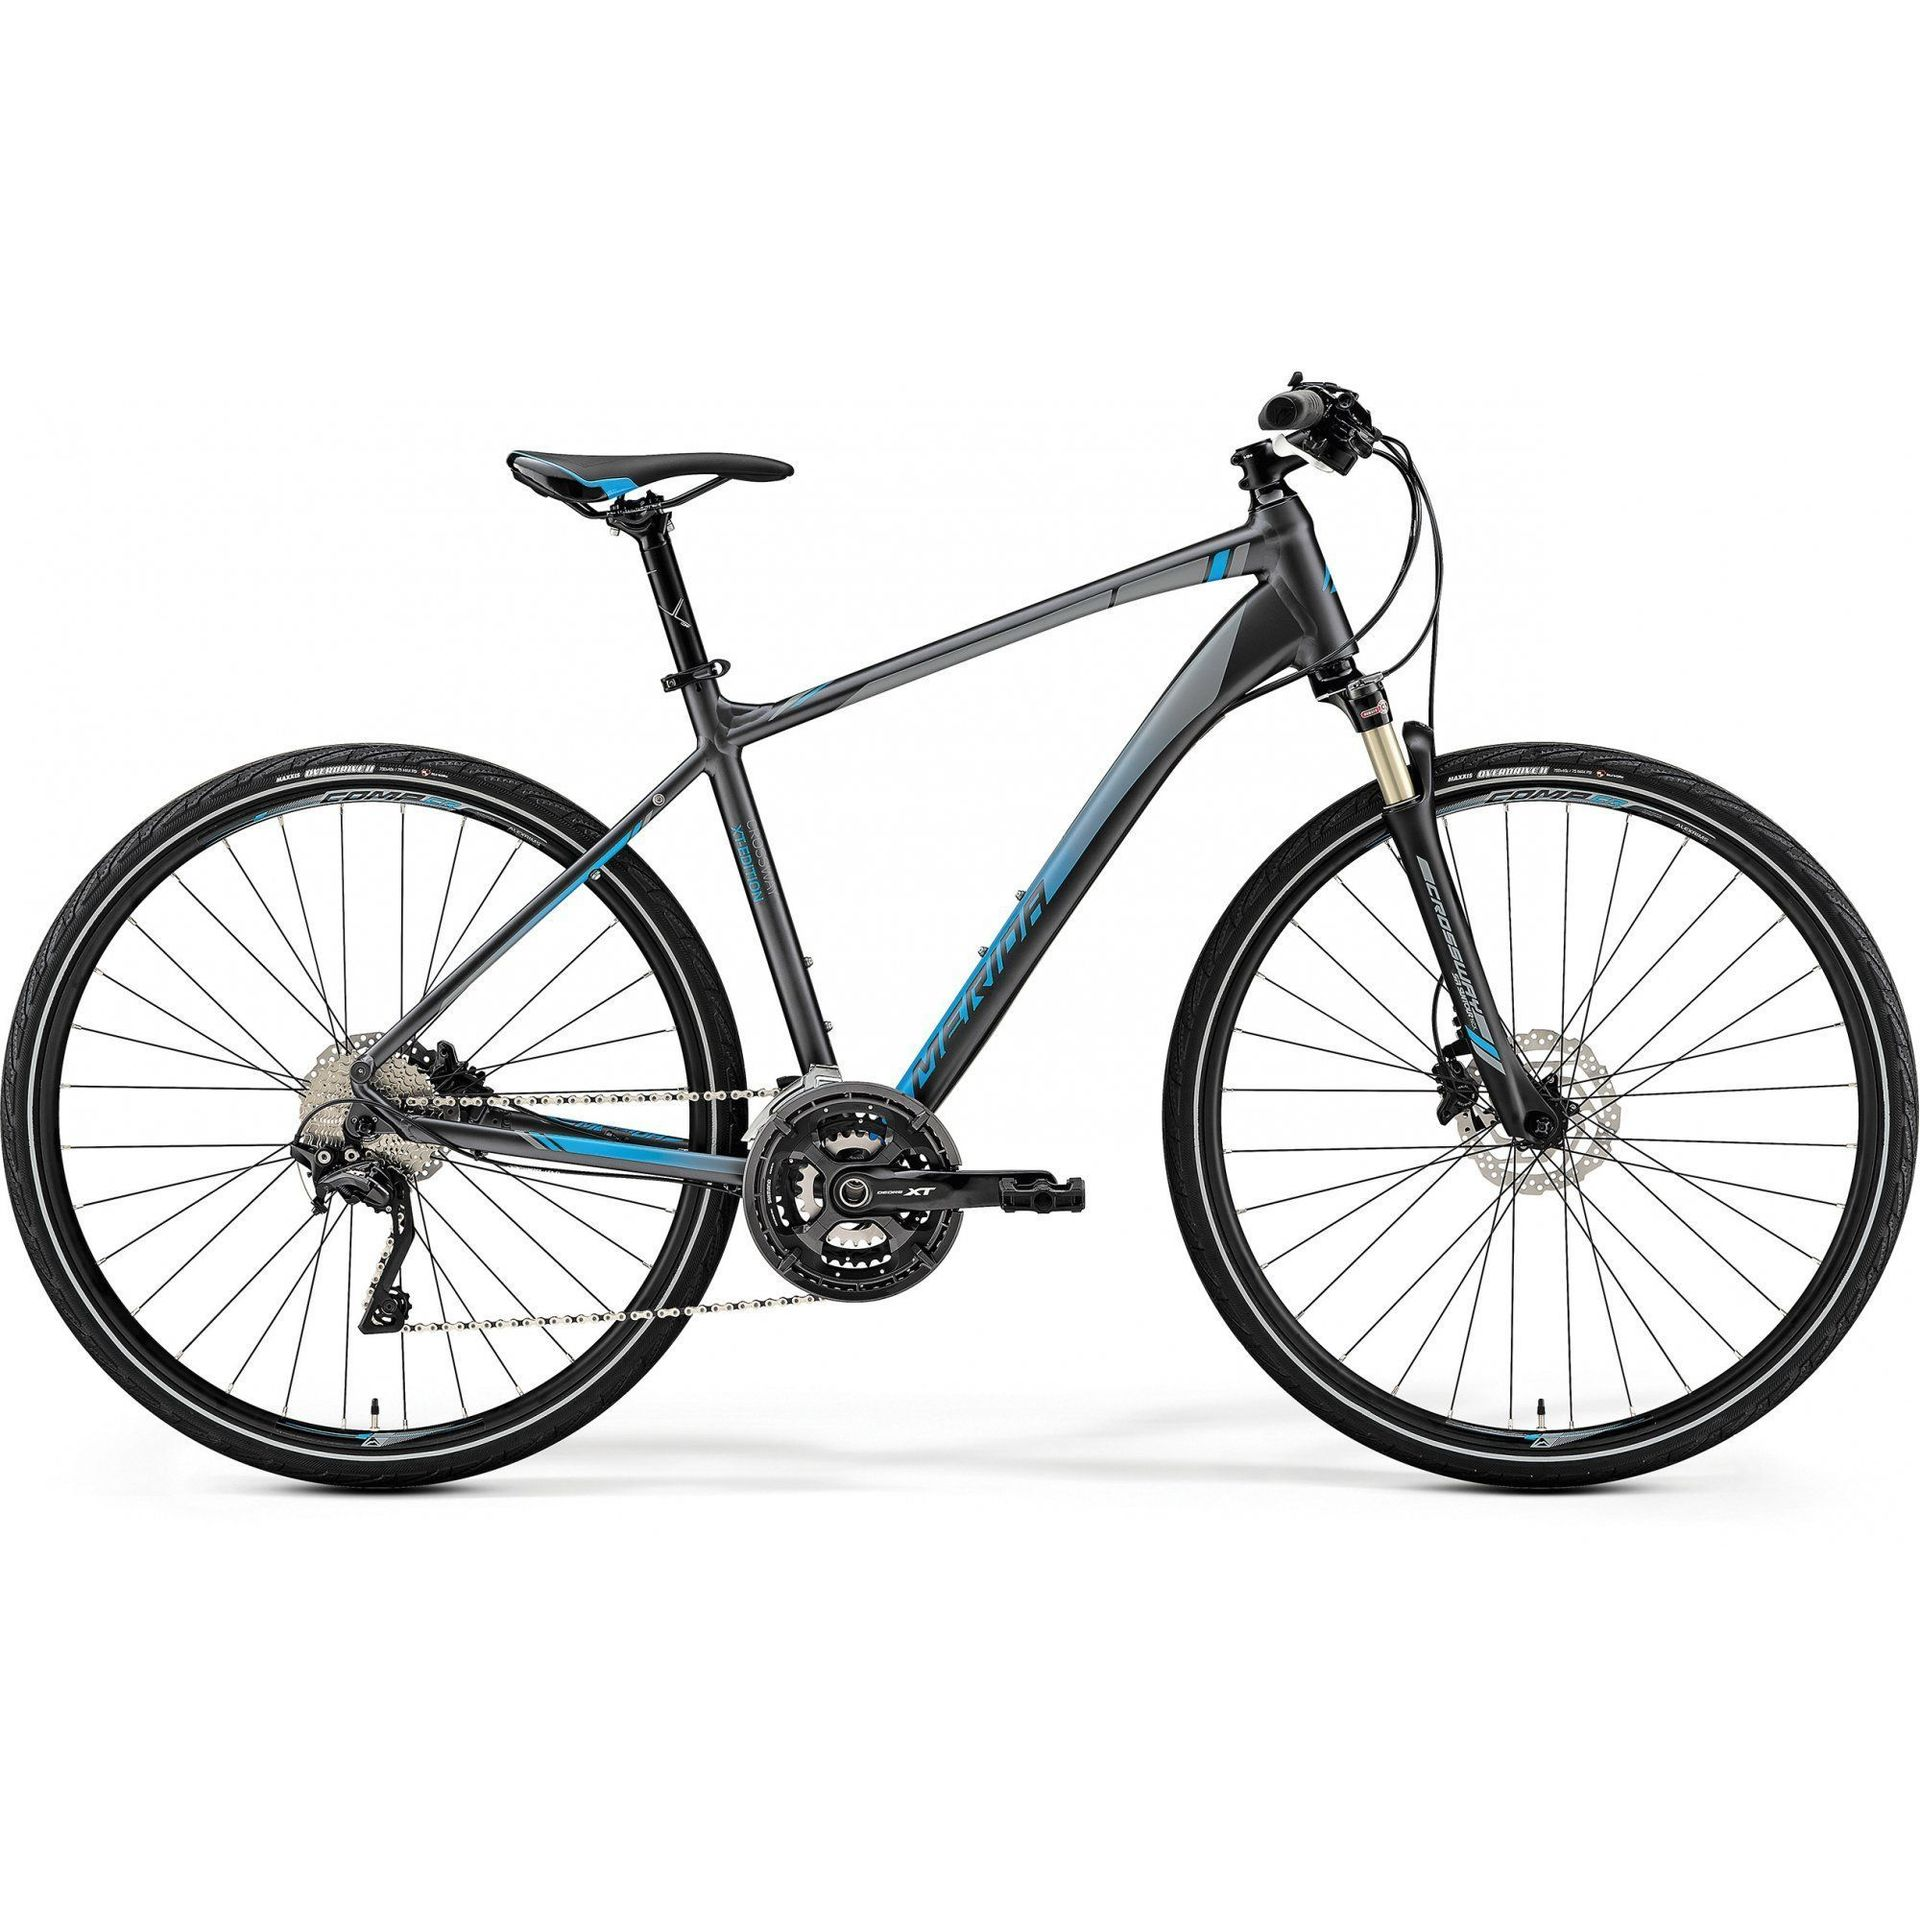 ROWER MERIDA CROSSWAY XT-EDITION DARK SILVER|BLUE